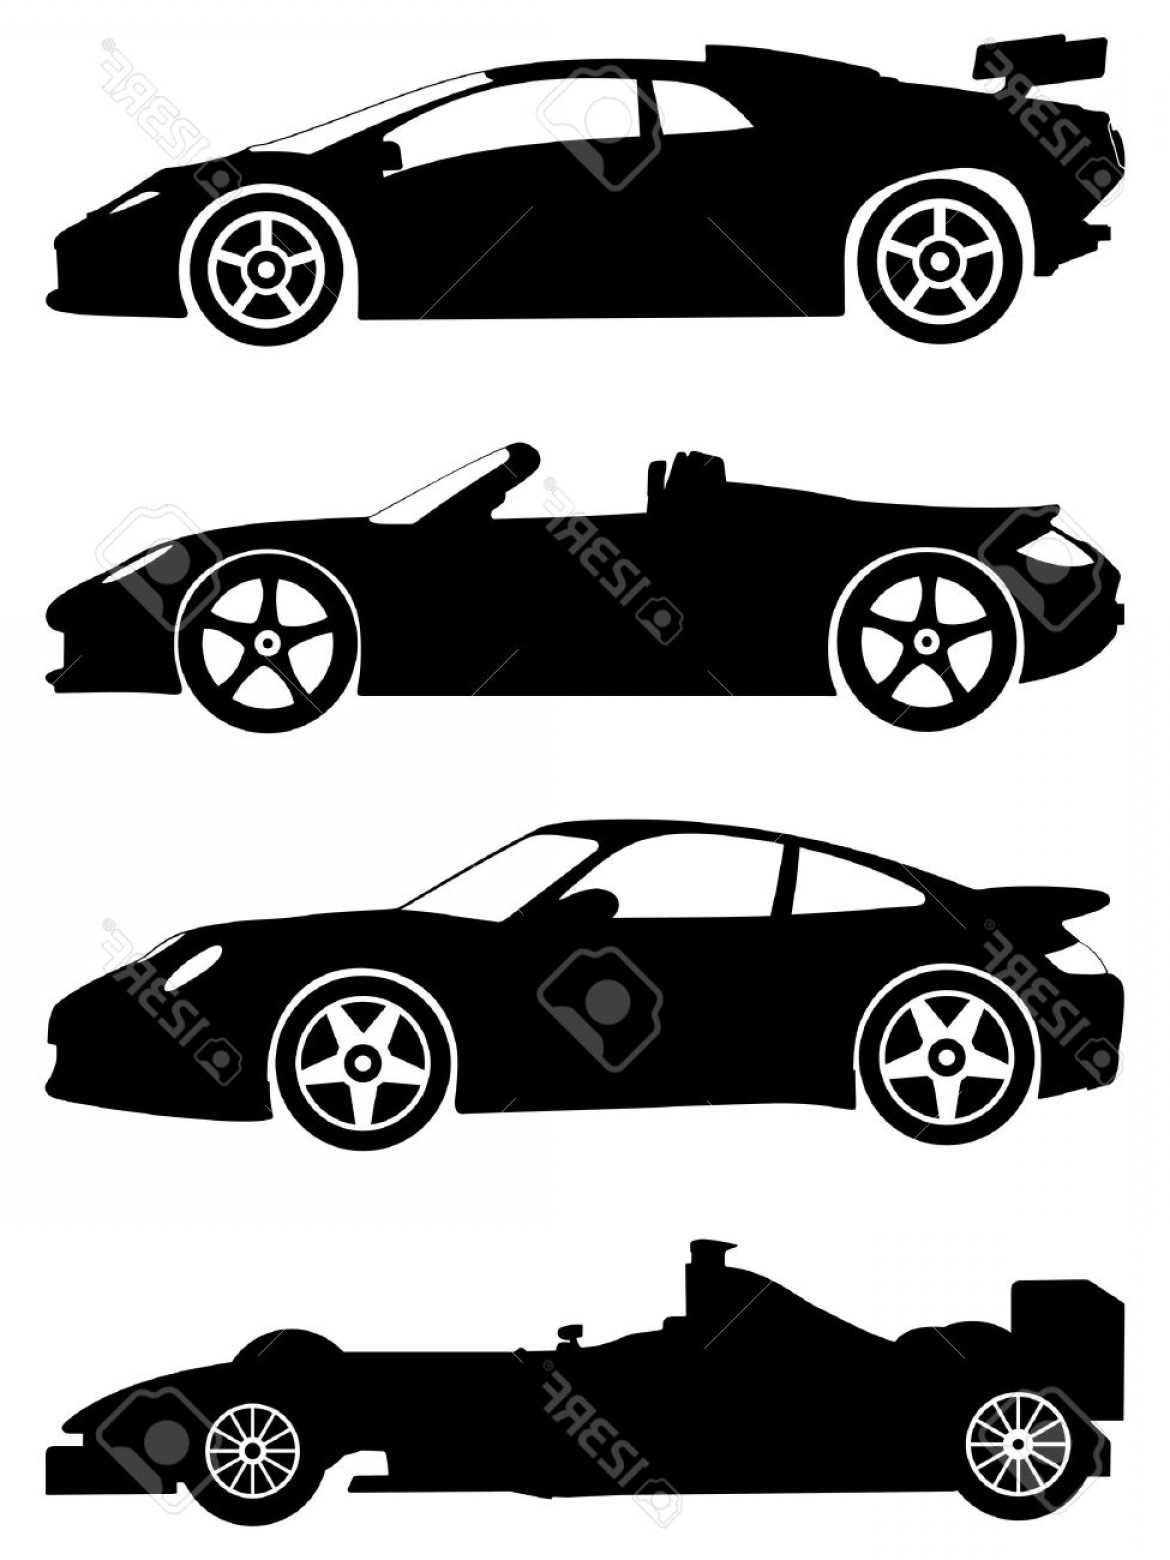 Car Silhouette Vector Free: Photosilhouette A Sport Cars On A White Background Vector Illustration